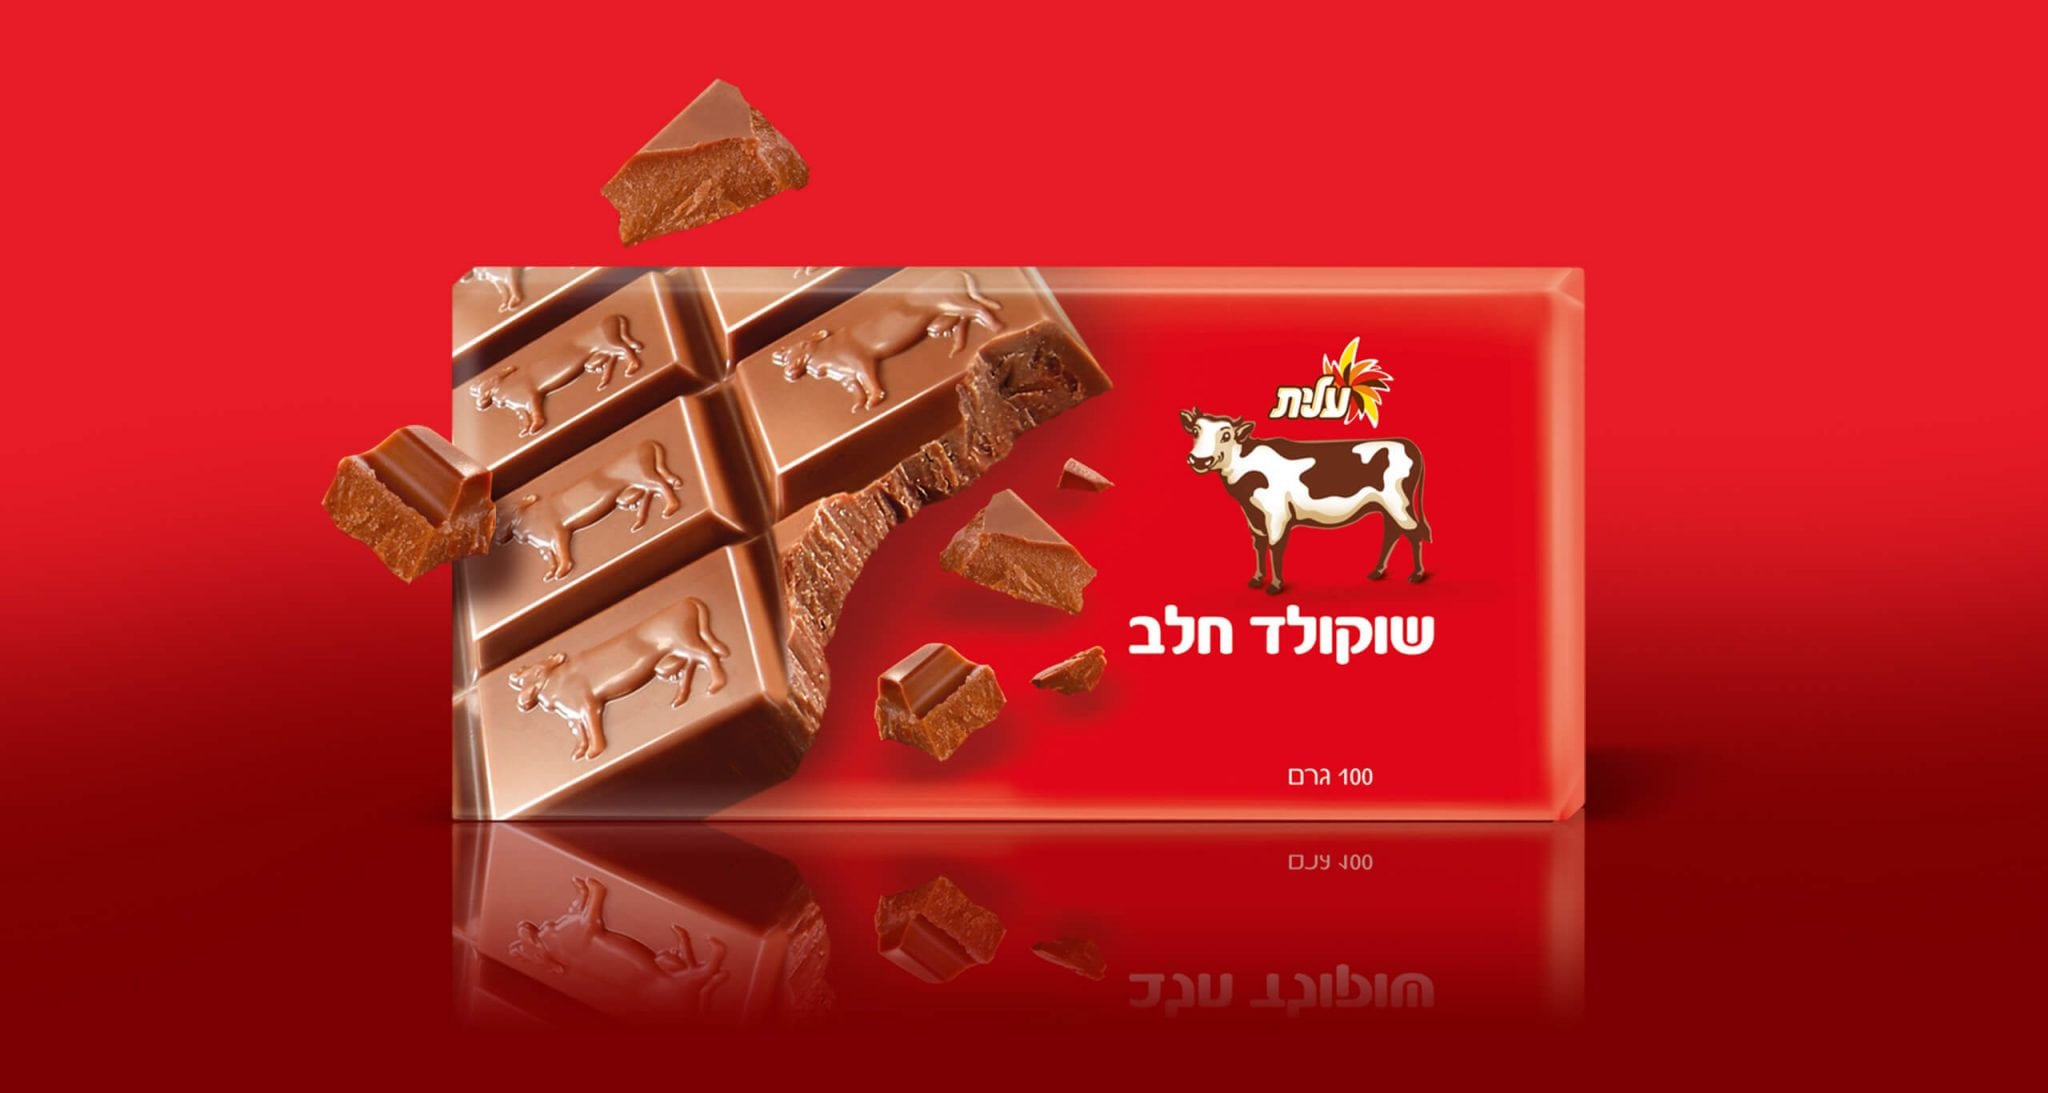 ELITE_CHOCOLATE_GalleryA01_2560x1366